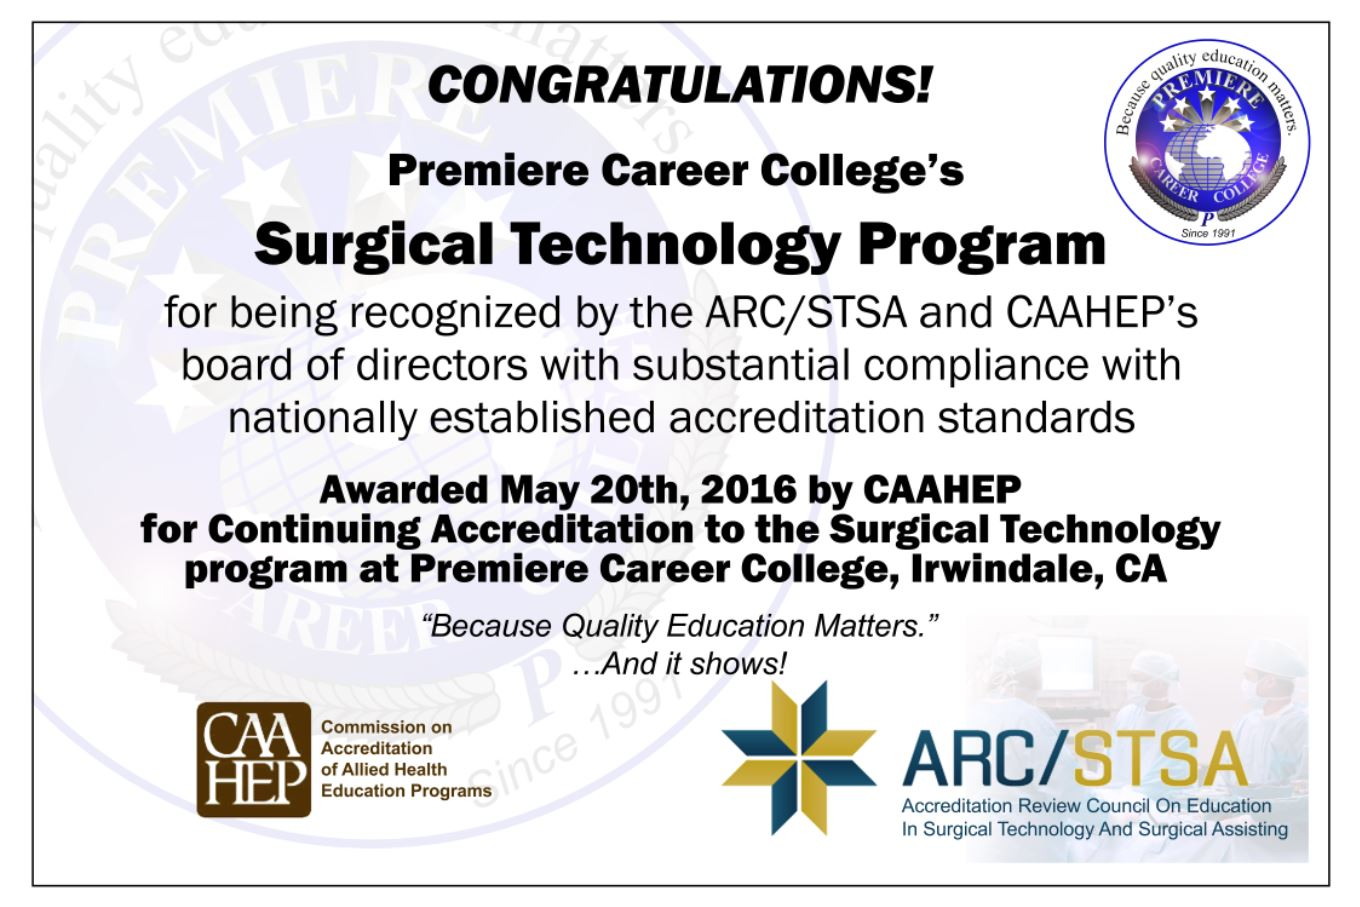 certification for surgical technology program